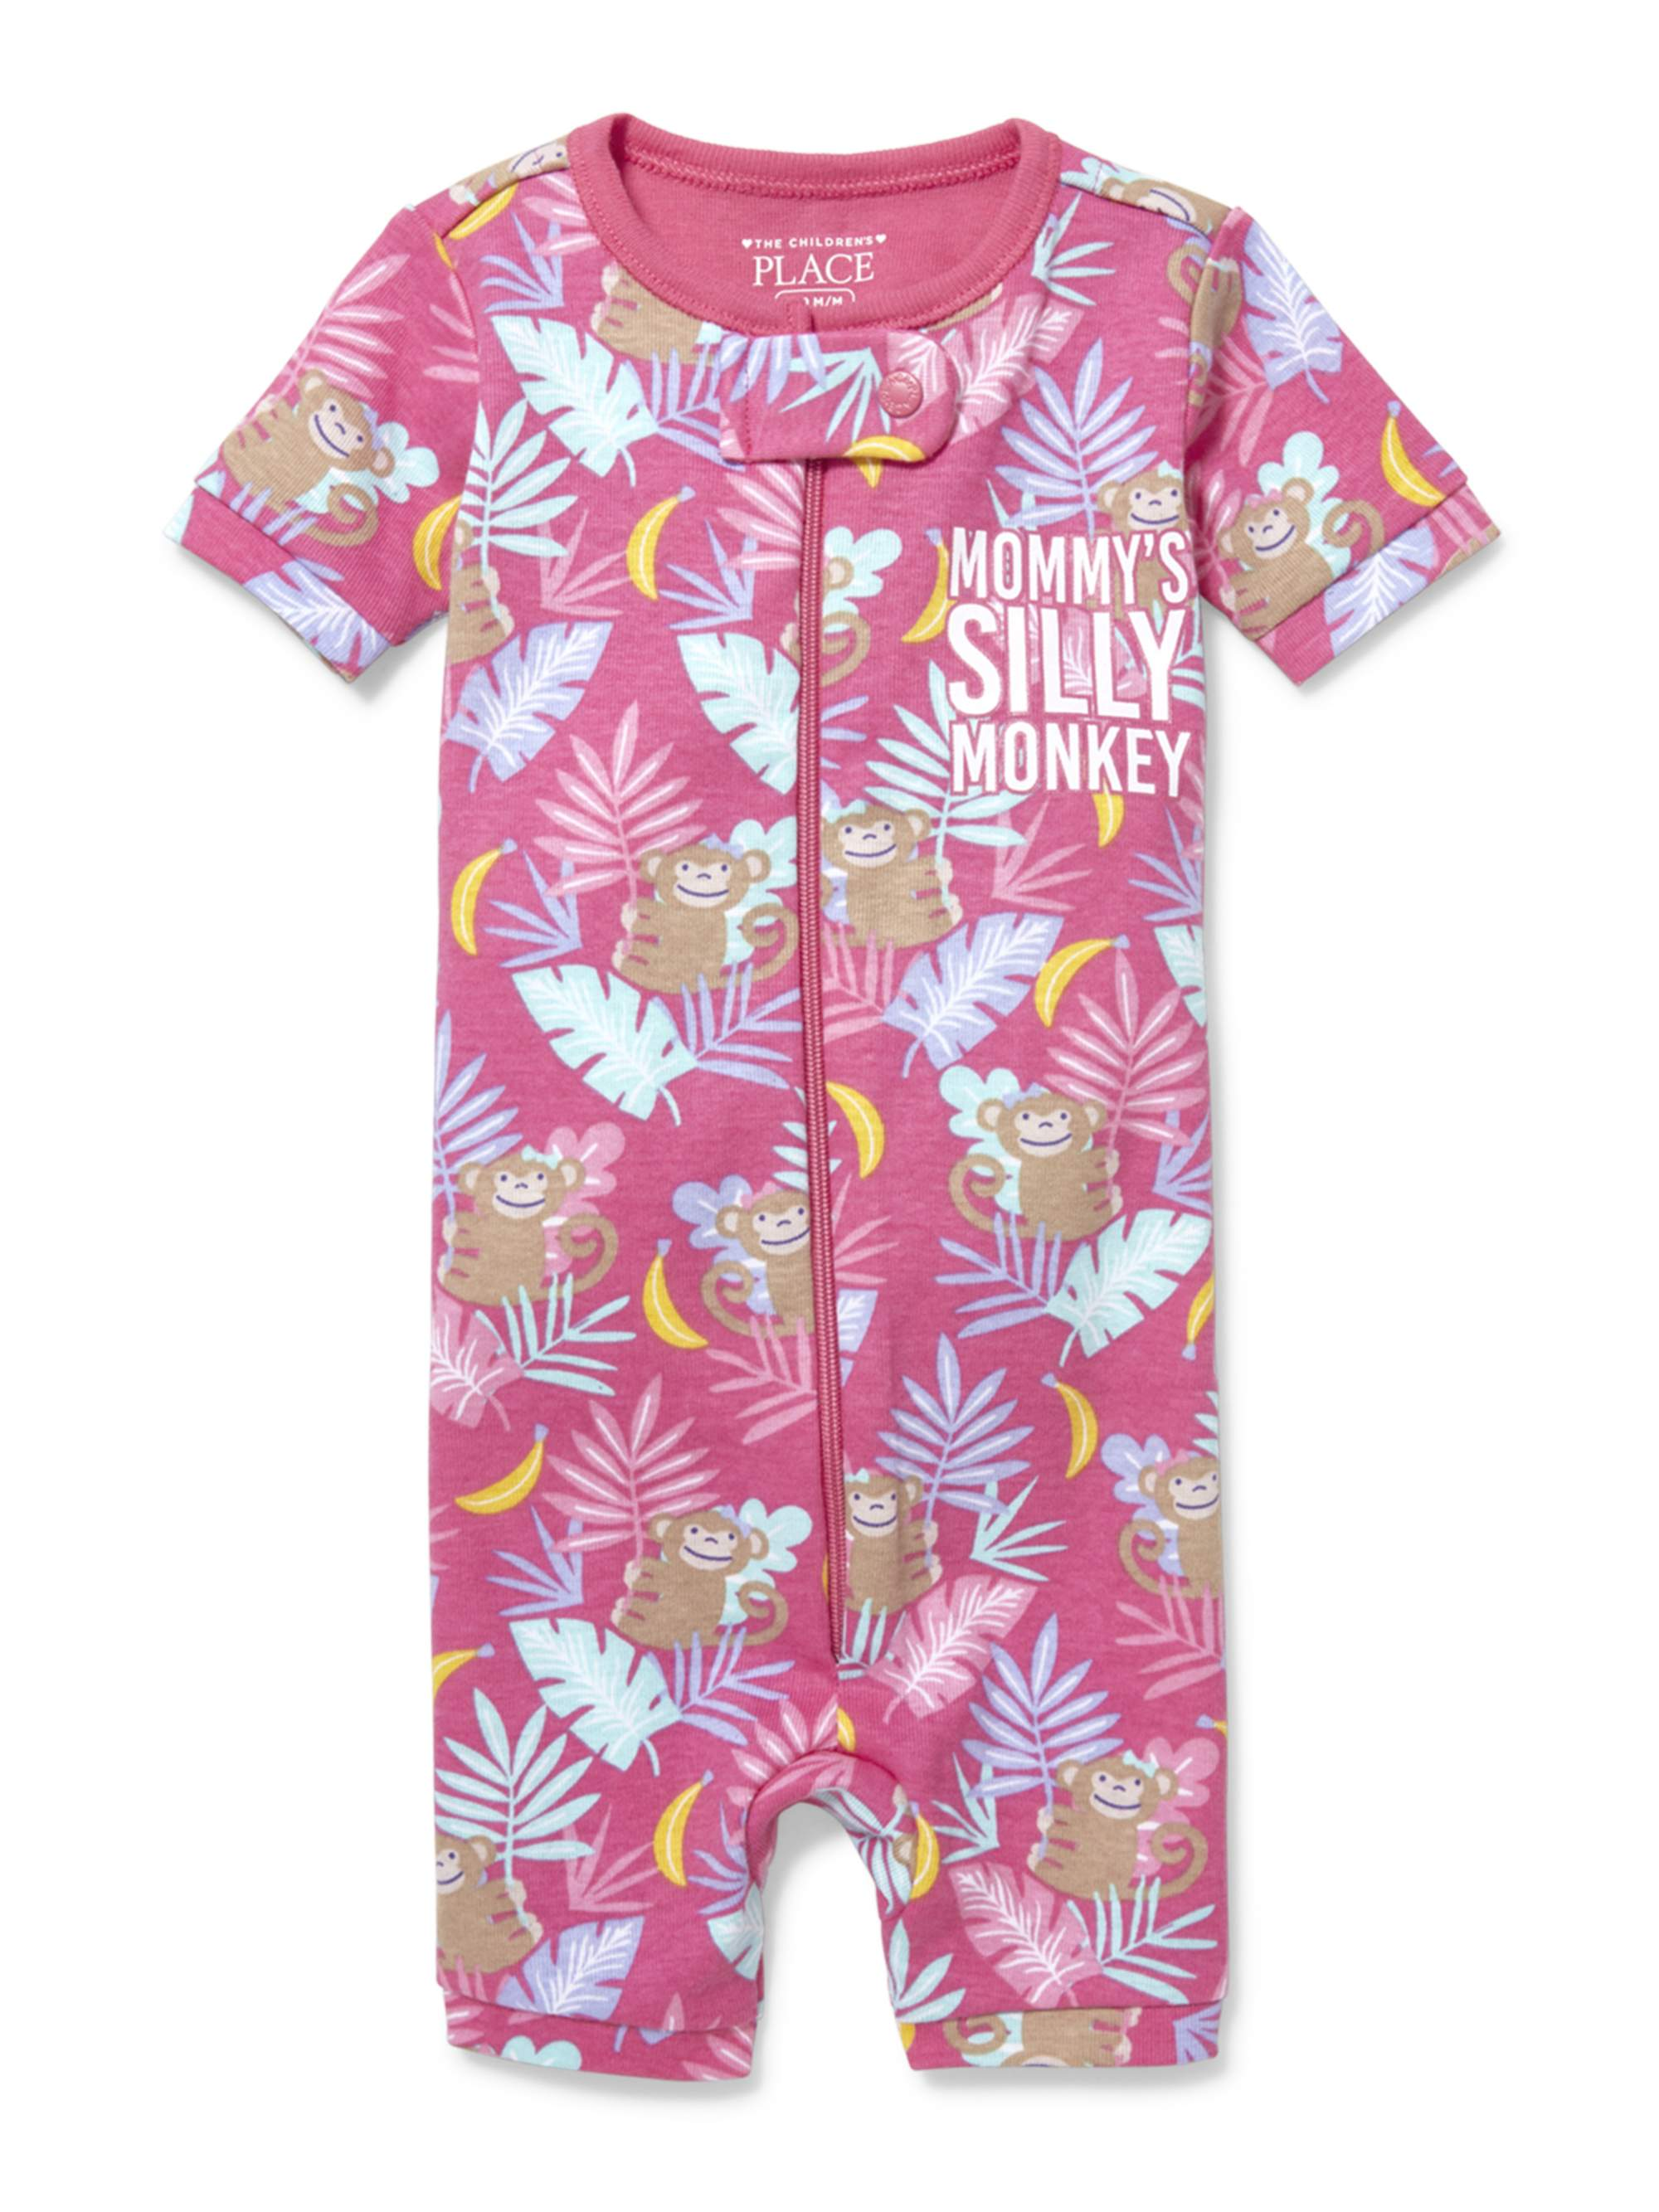 Baby And Toddler Girls 'Mommy's Silly Monkey' Jungle Printed Snug-Fit PJ Stretchy (Baby and Toddler Girl)